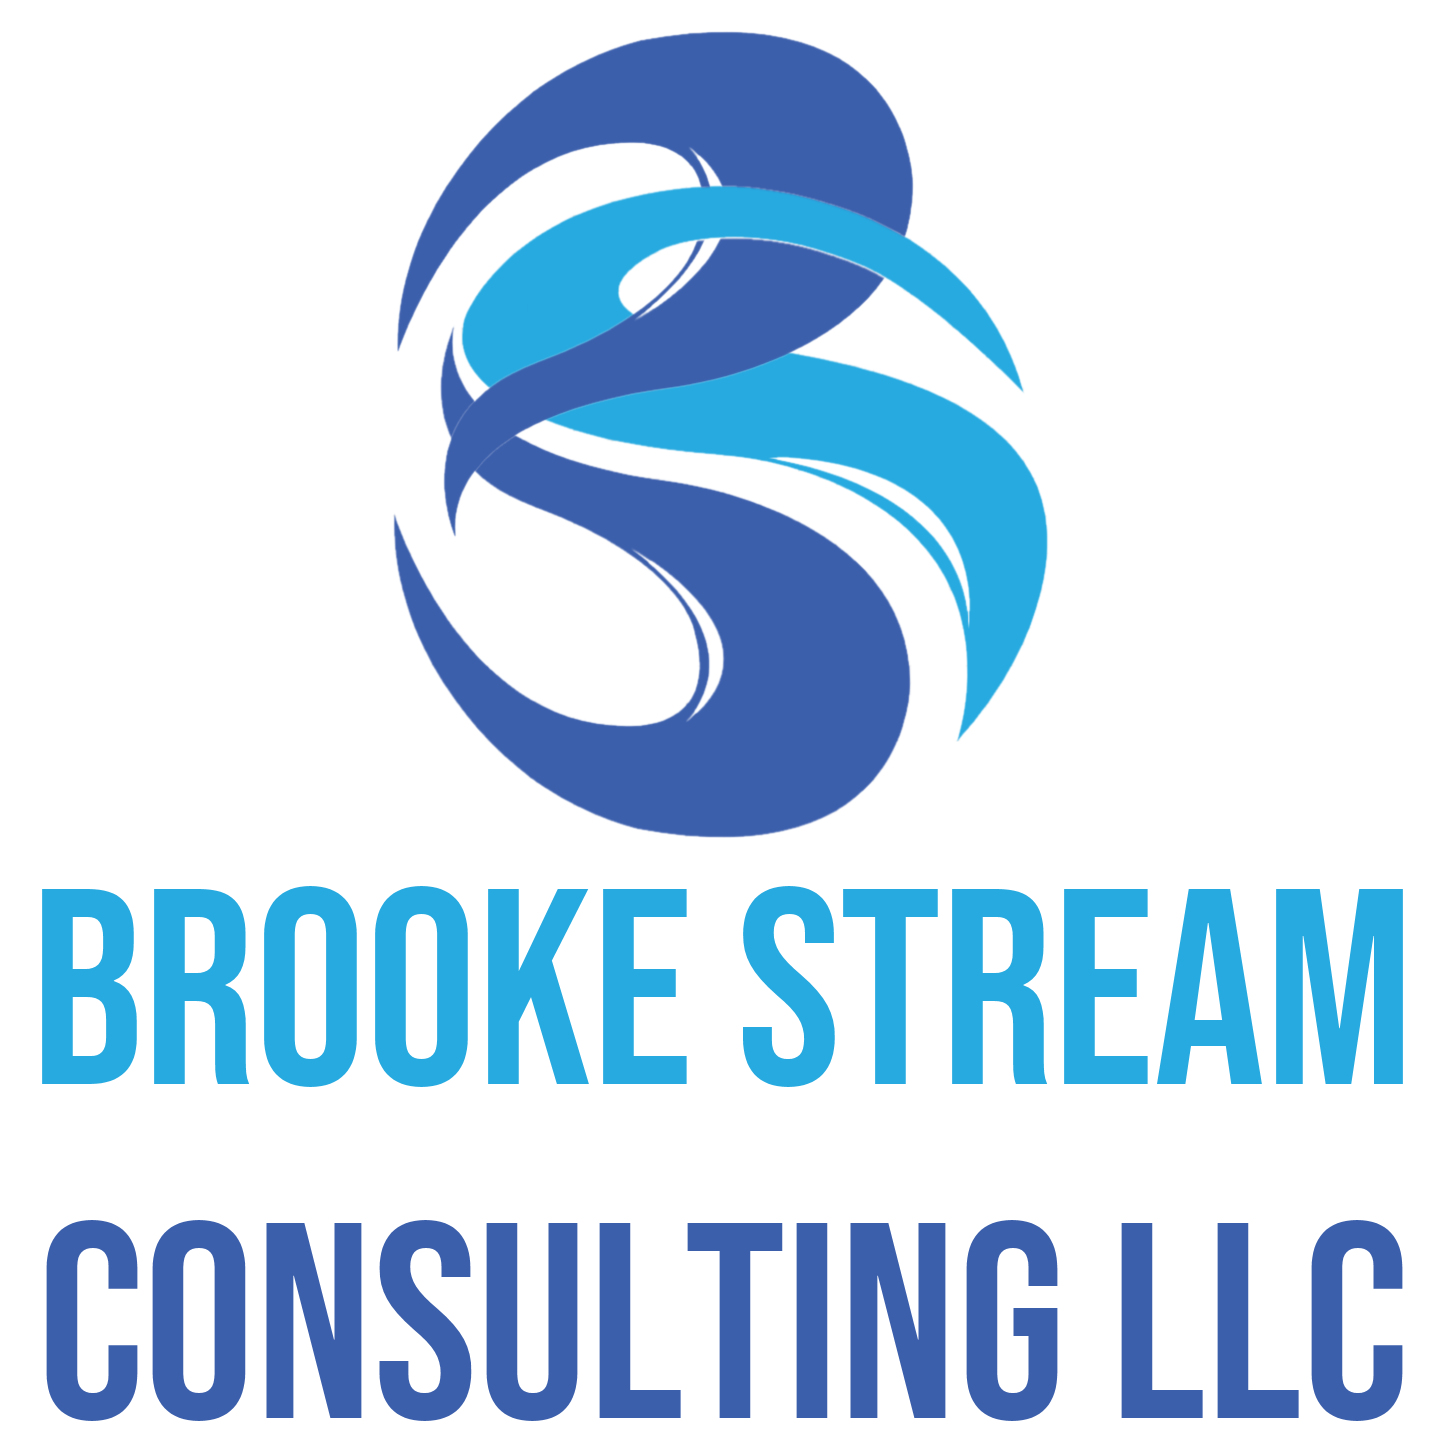 Brooke Stream Consulting LLC image